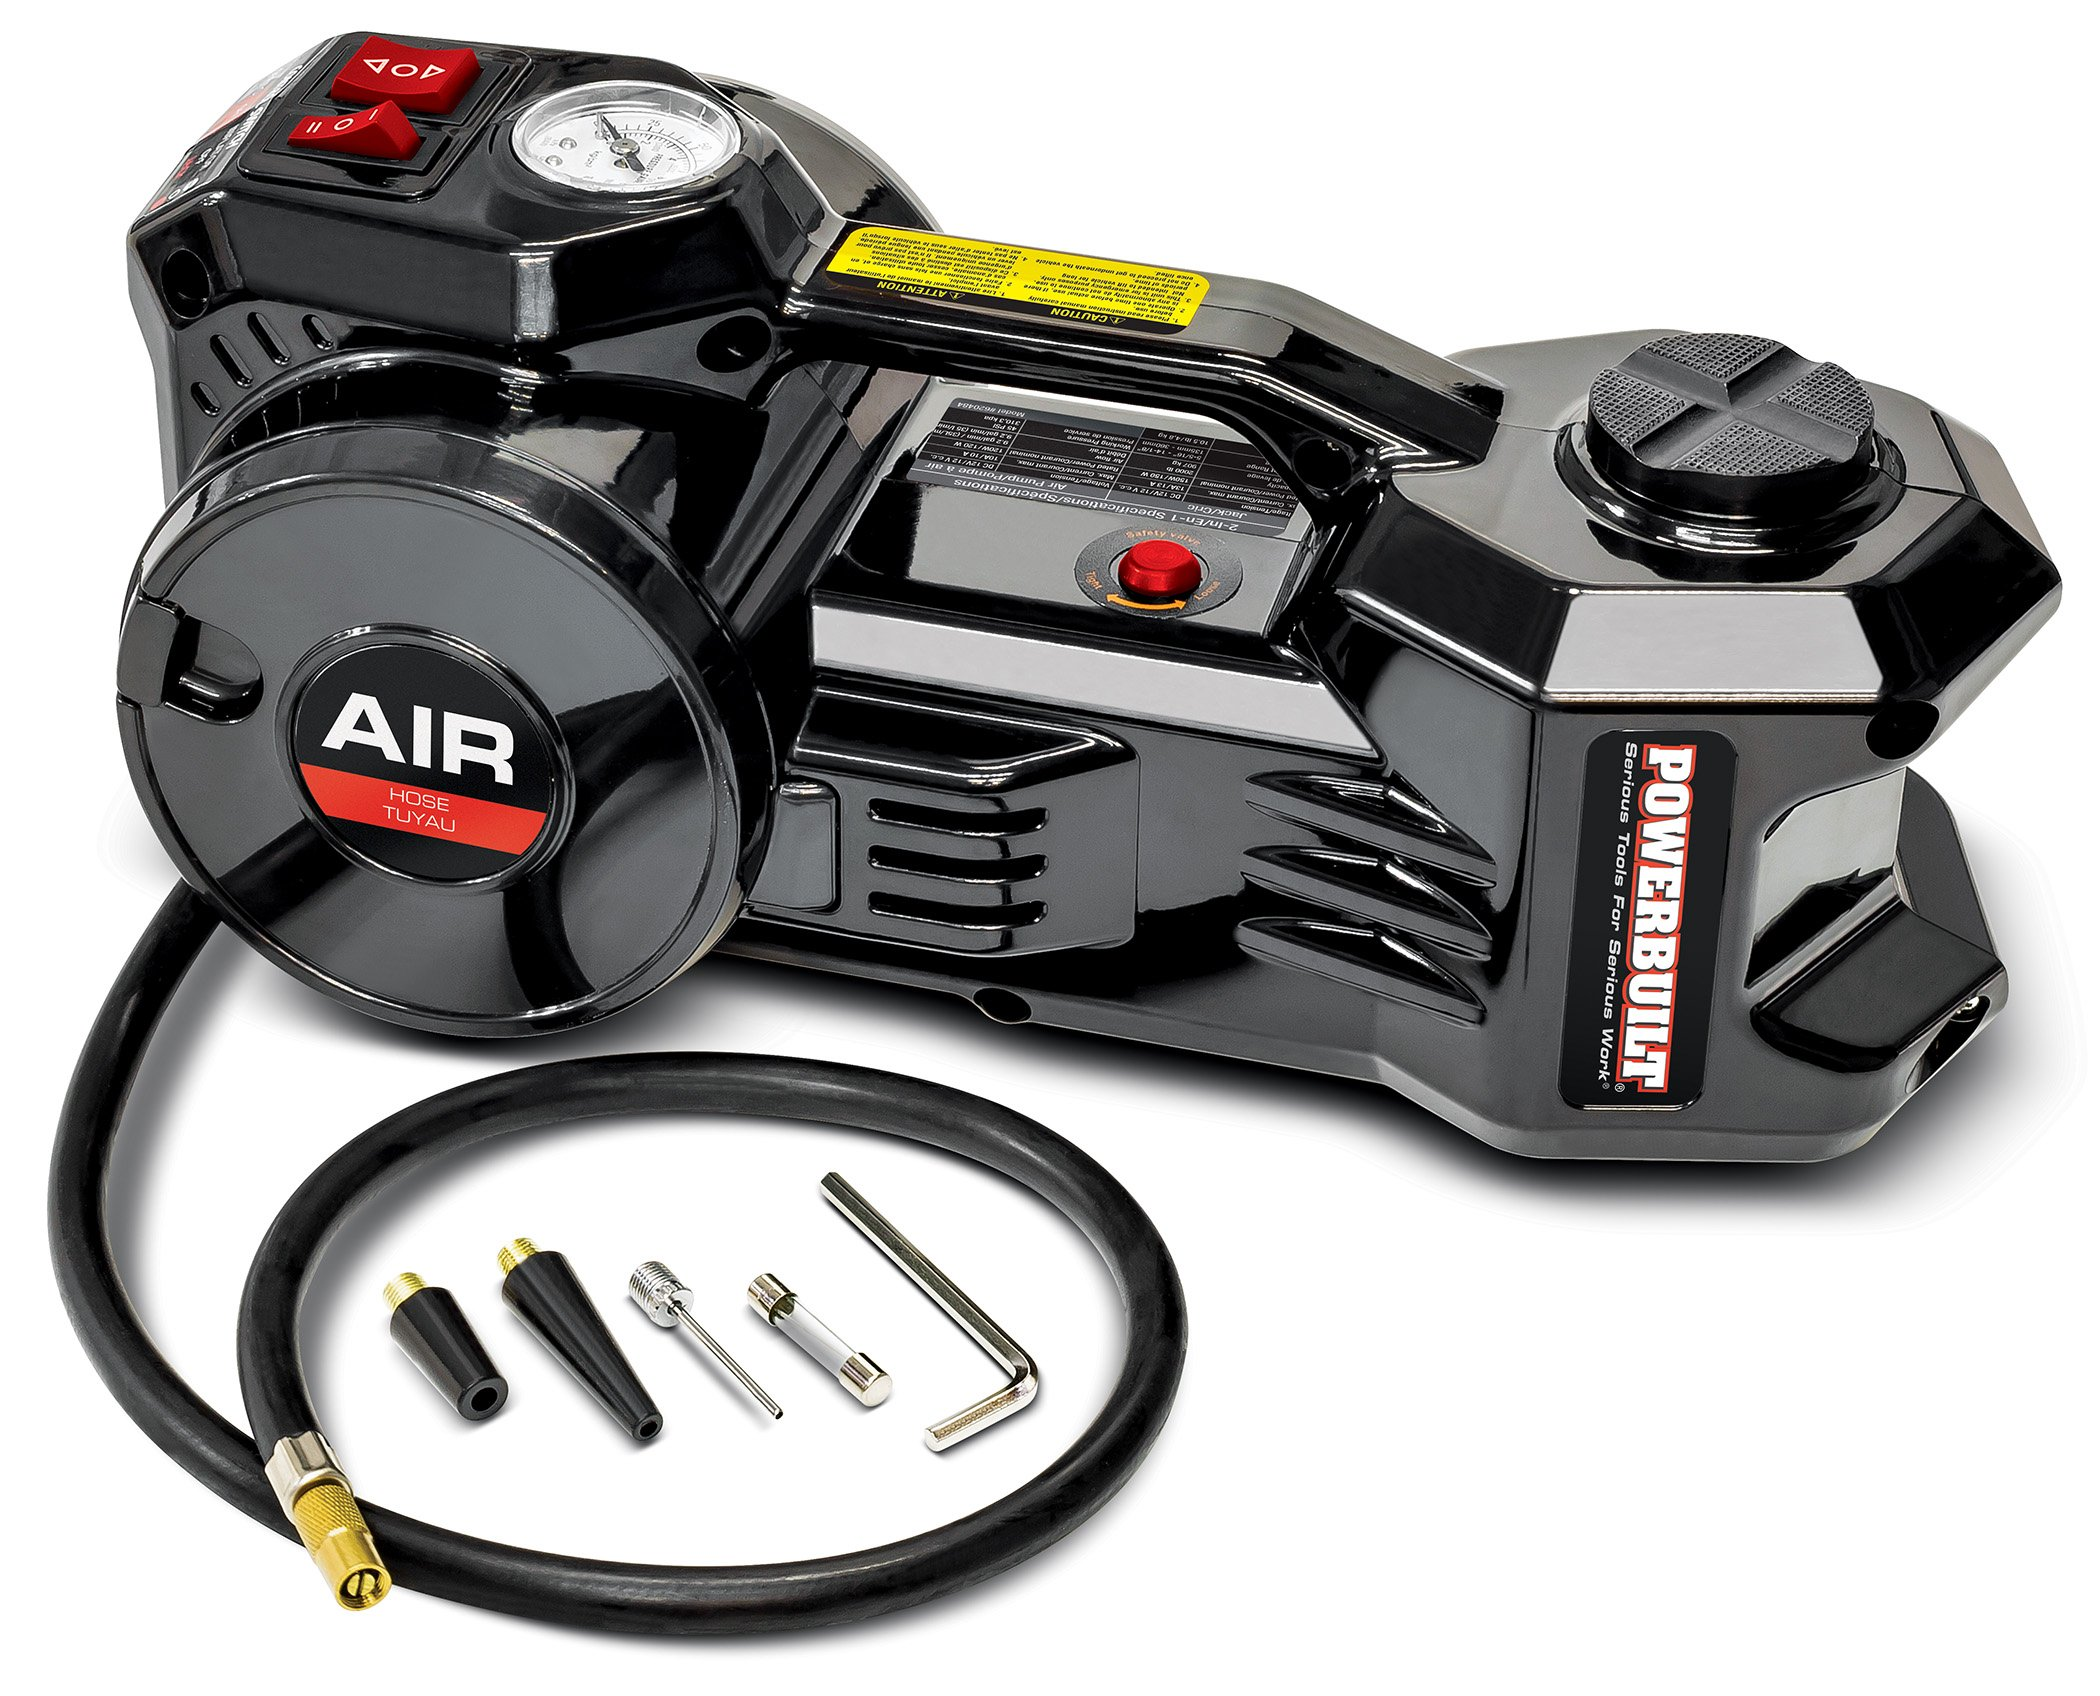 Powerbuilt 620484 12V Electric Jack and Tire inflator